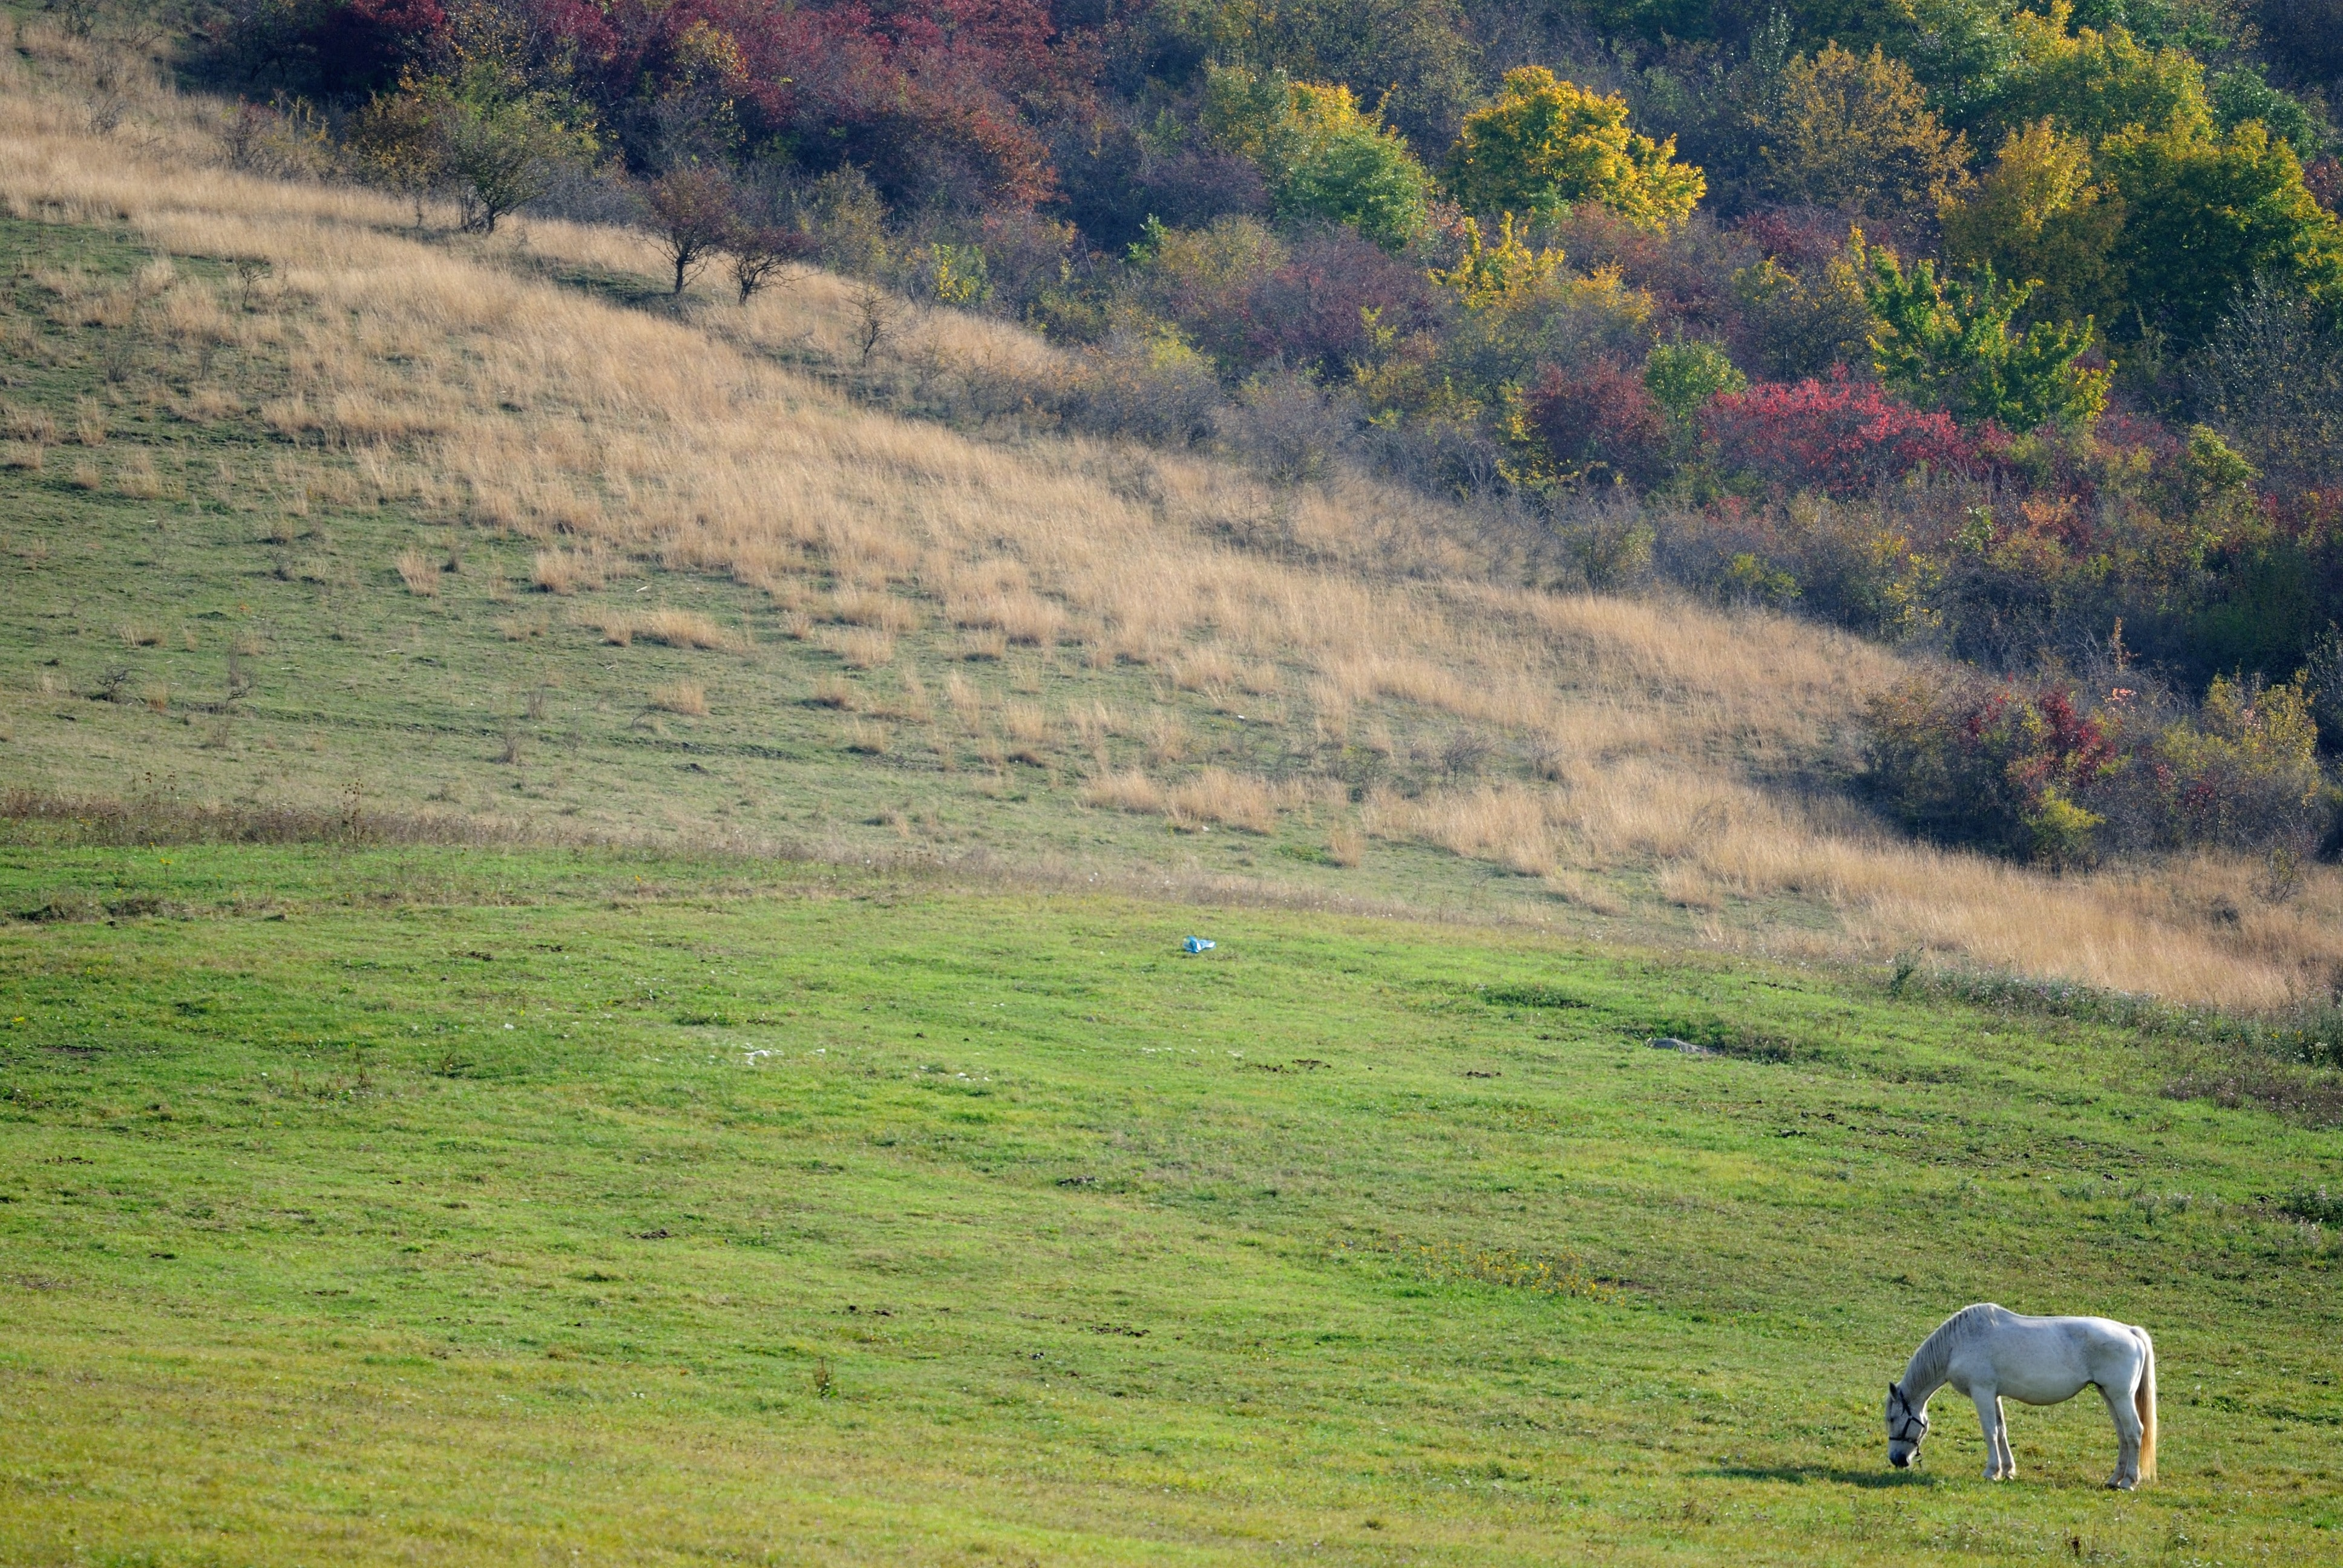 A lone gray pony grazing on a green slope